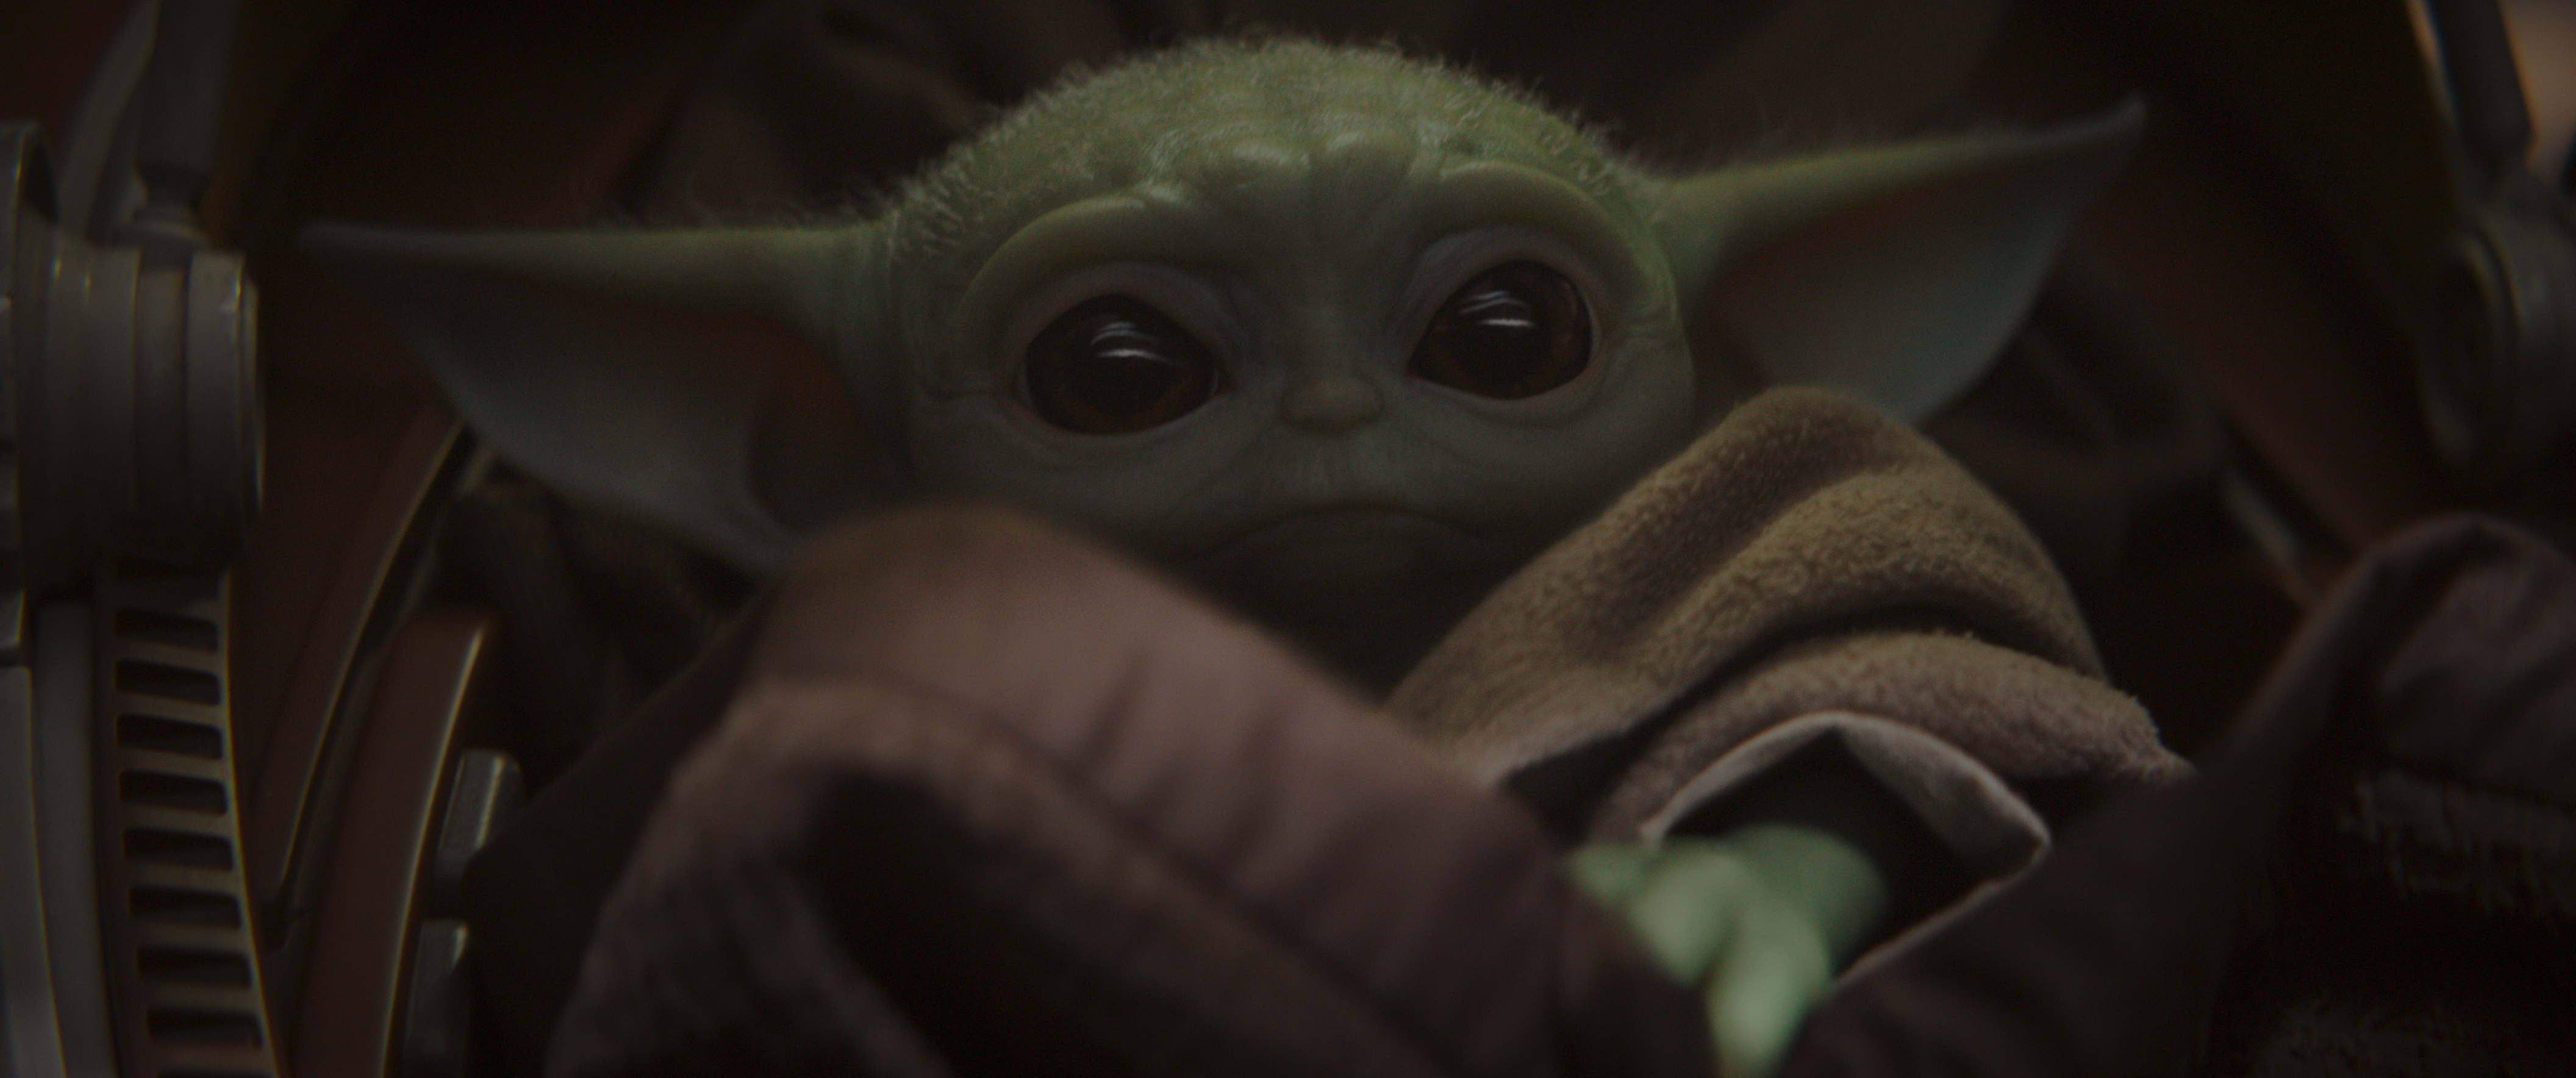 Baby Yoda  has emerged as one of the biggest viral stars of the new Disney+ show The Mandalorian. Here's how to celebrate.